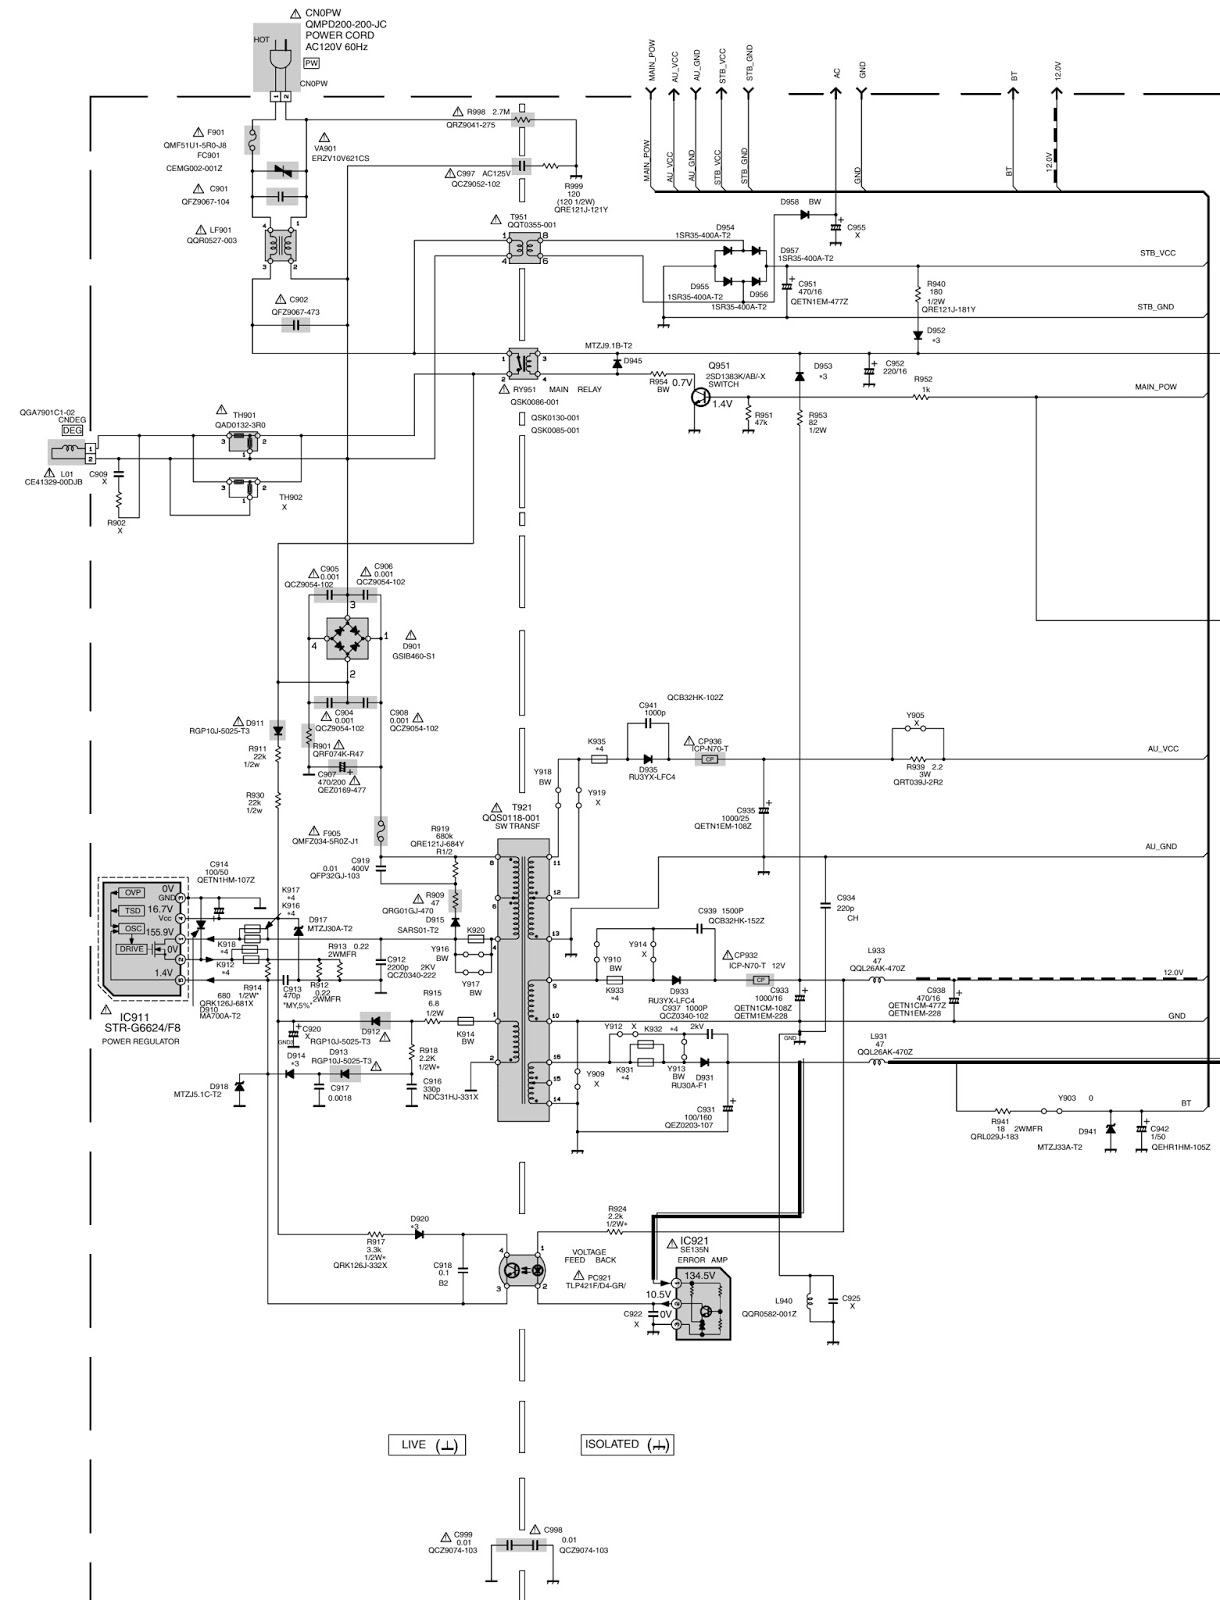 1.bmp jvc av 27d502 ar av 27d502 smps schematic diagram [circuit bodine ballast wiring diagram at edmiracle.co